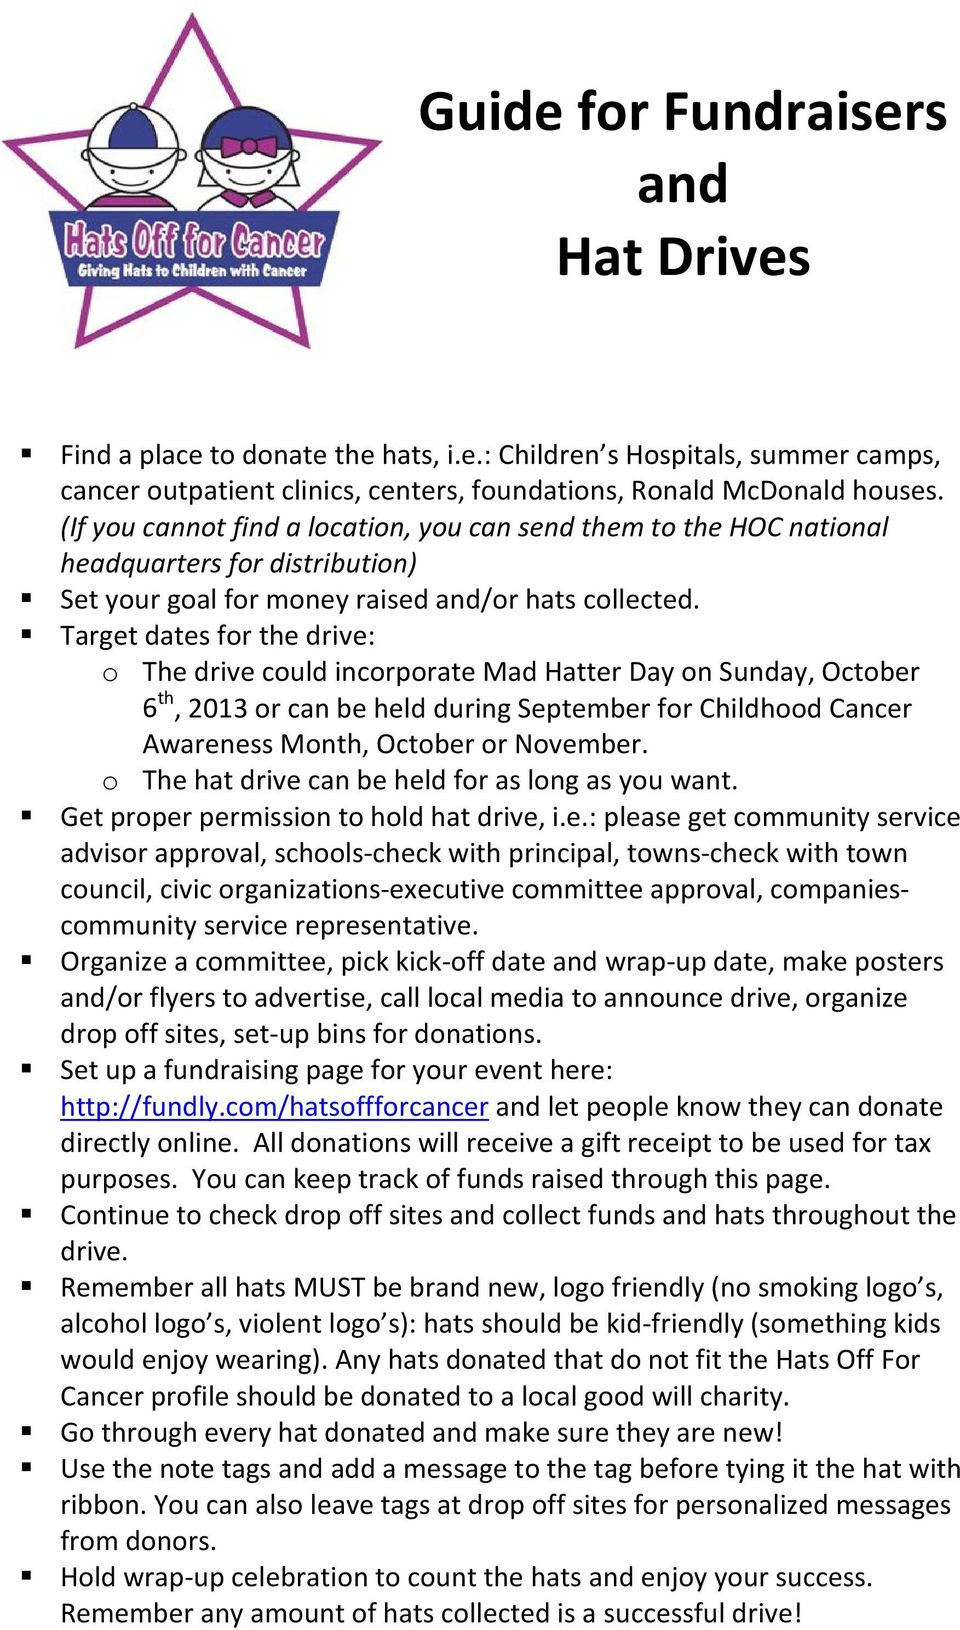 Target dates for the drive: o The drive could incorporate Mad Hatter Day on Sunday, October 6 th, 2013 or can be held during September for Childhood Cancer Awareness Month, October or November.